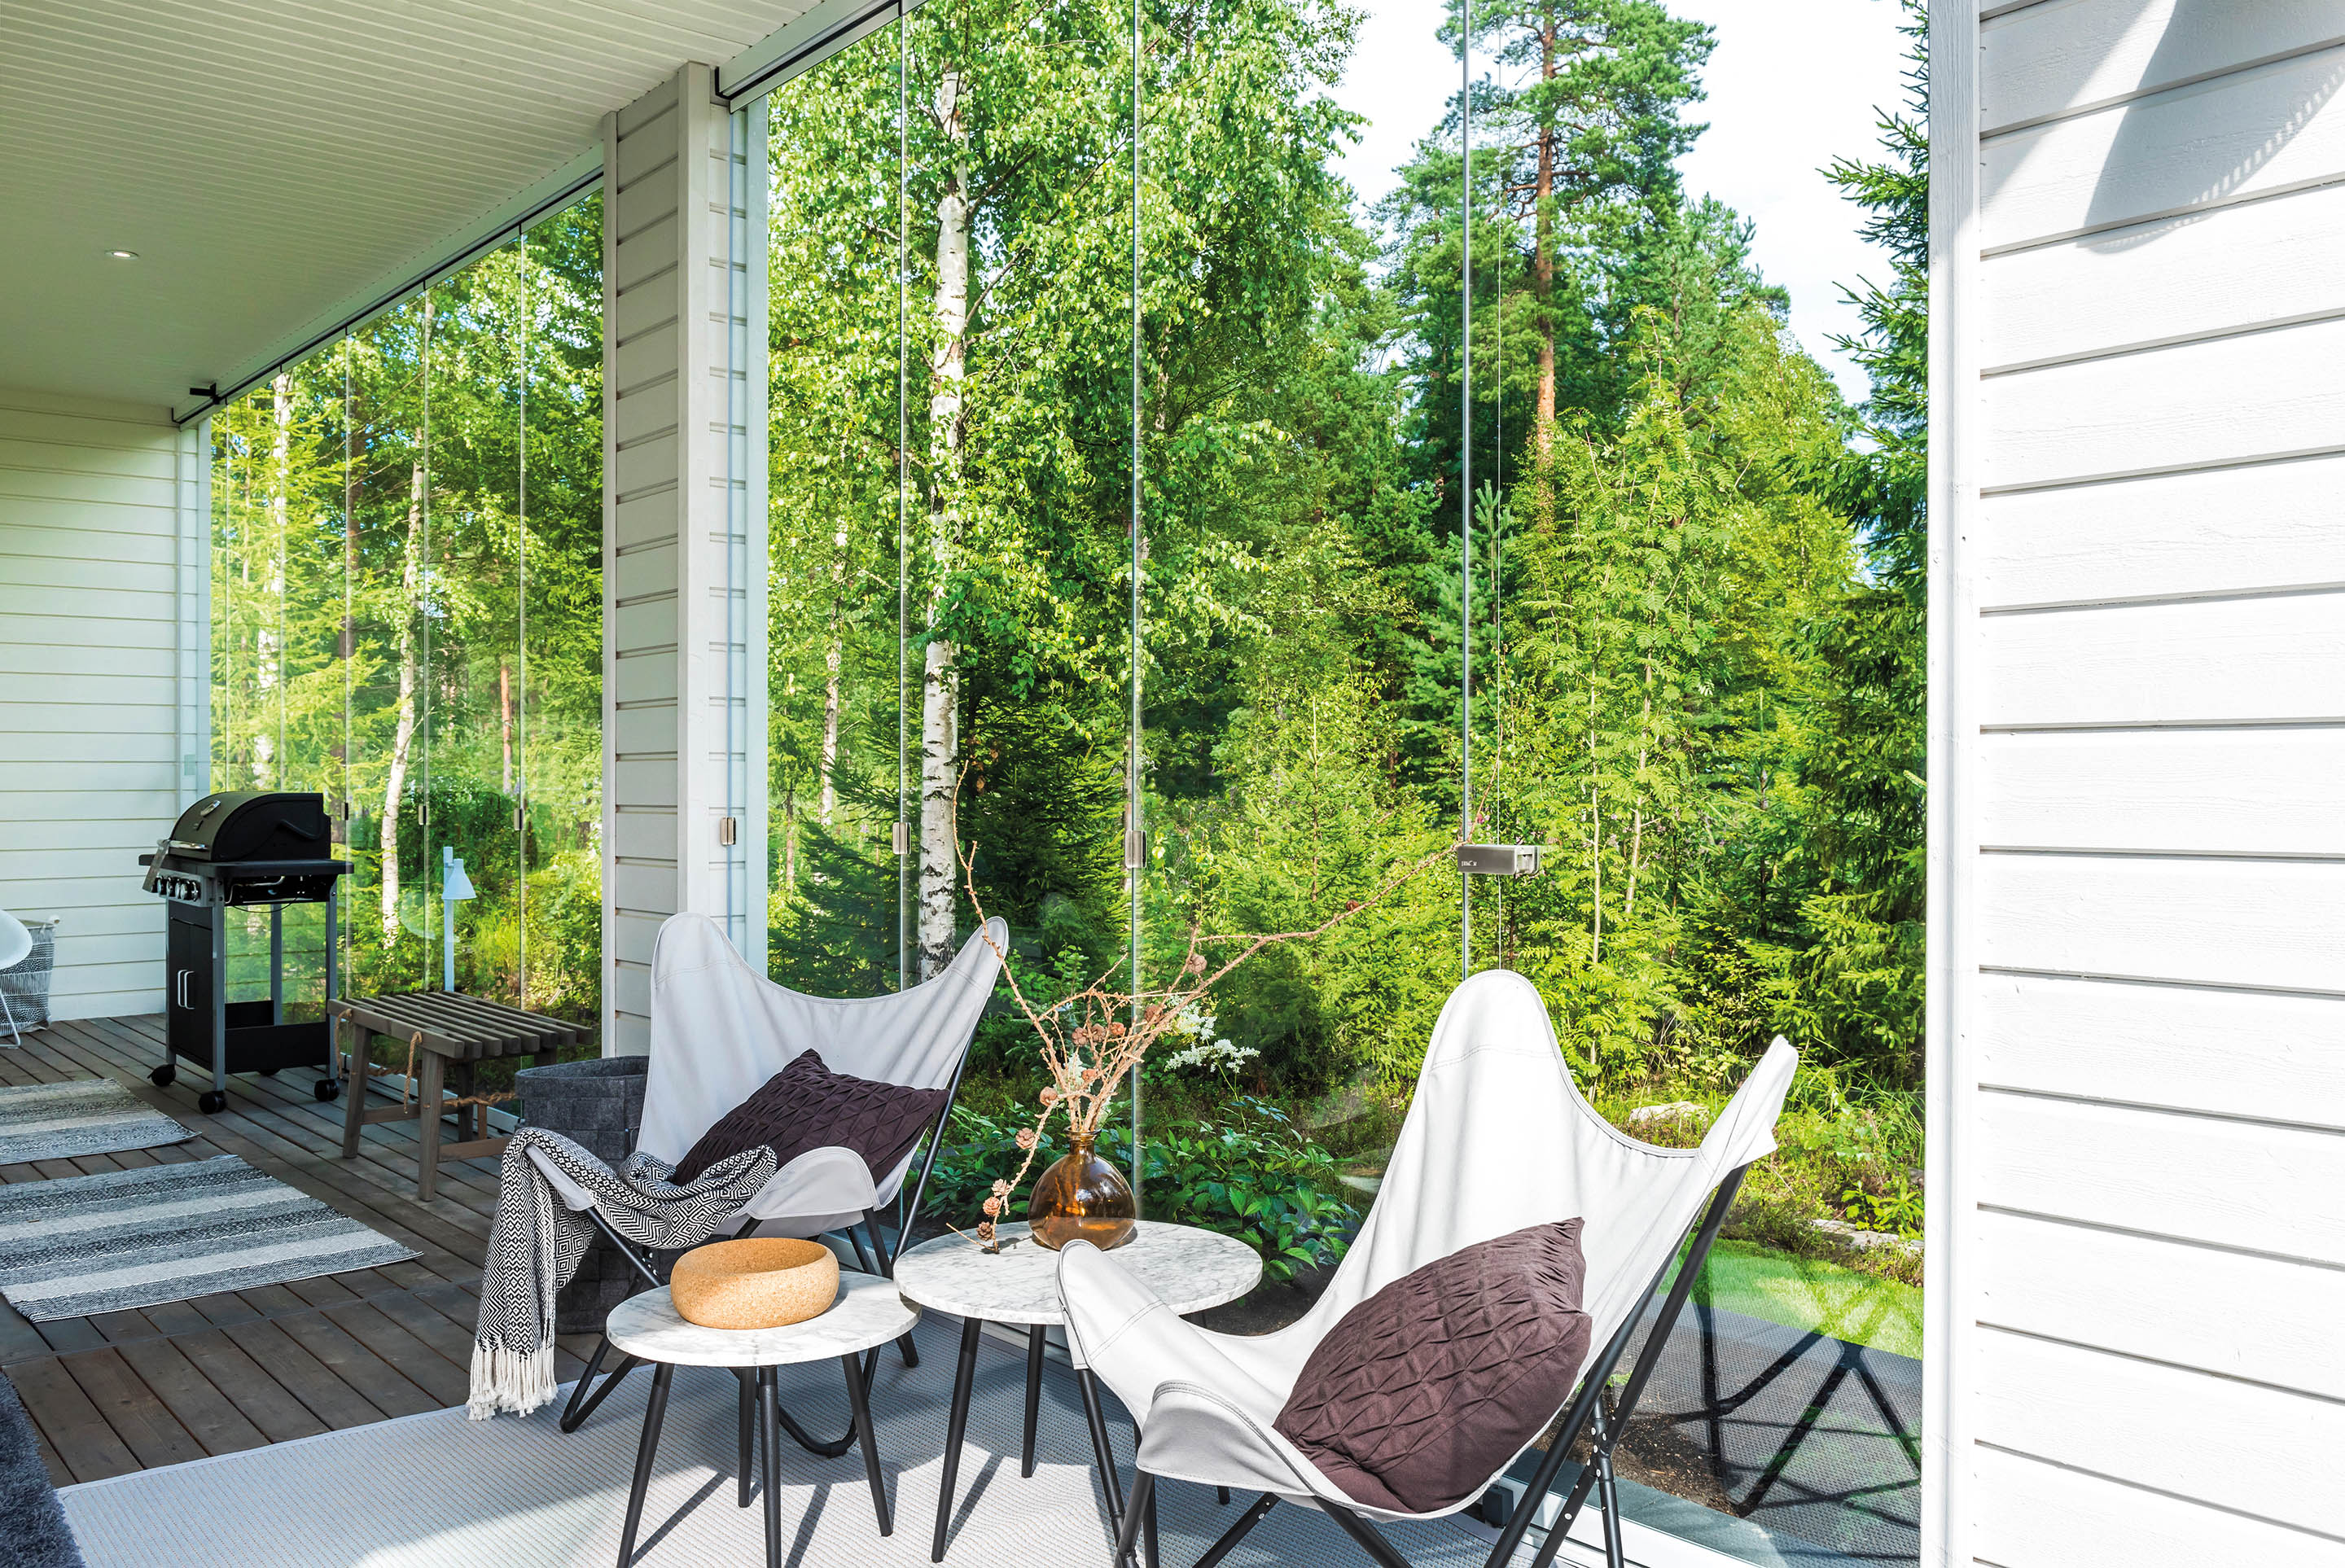 sunroom purchase, how to purchase a glass sunroom